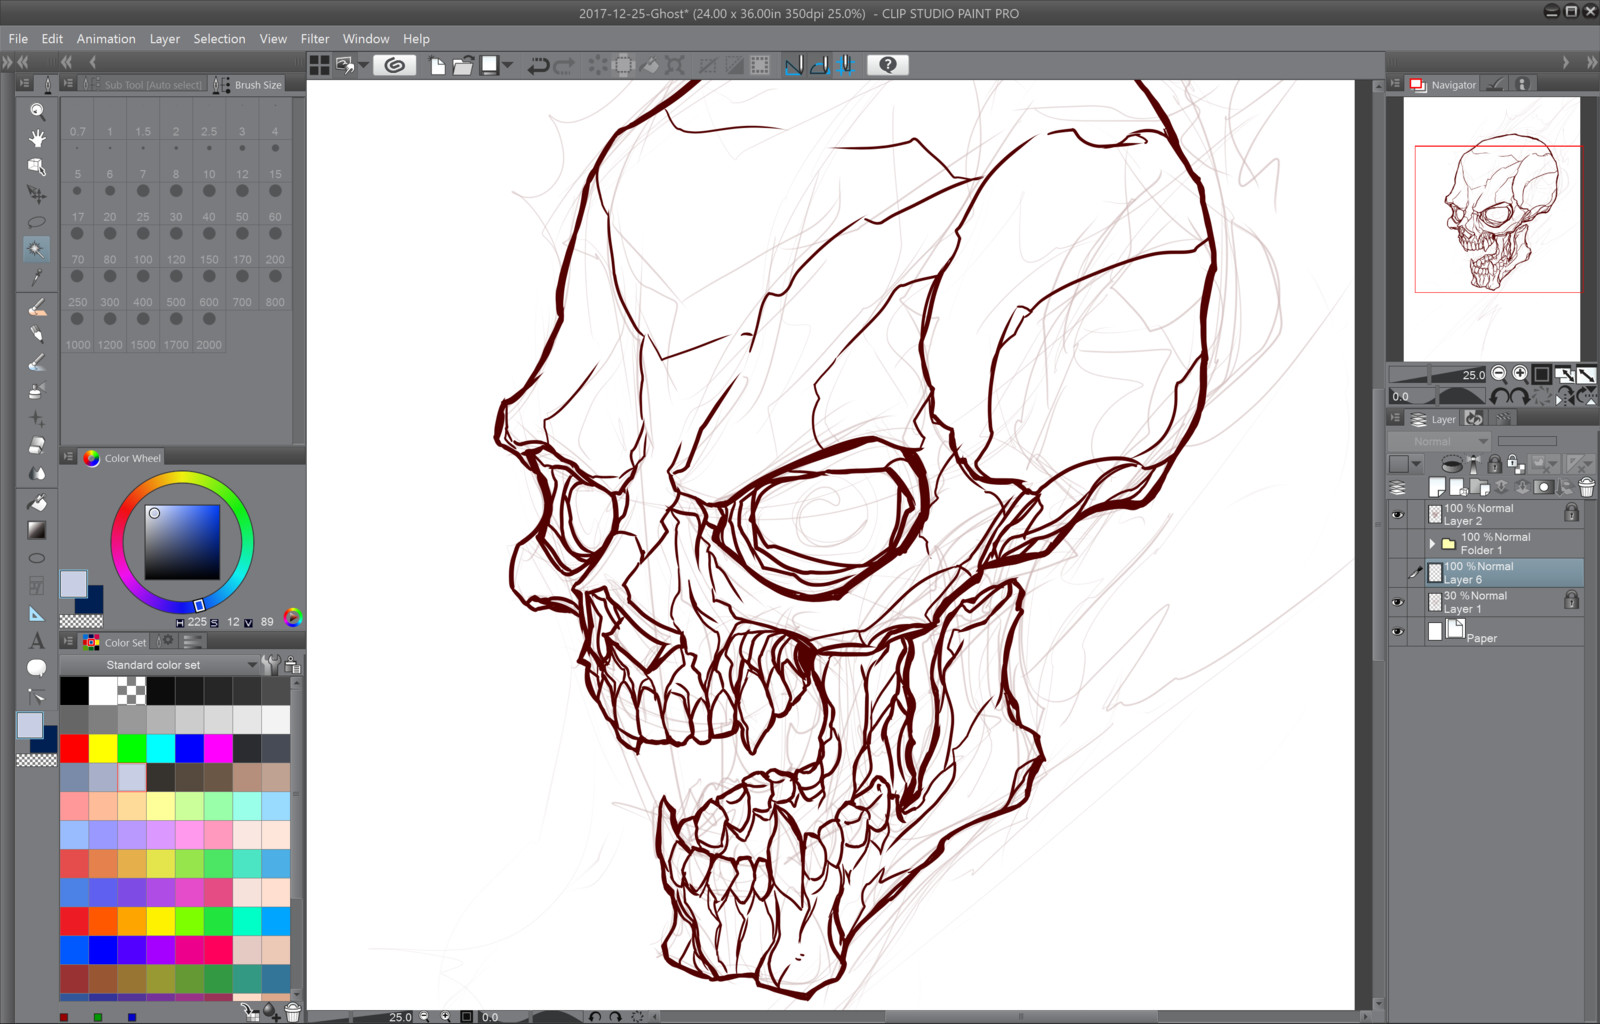 02- Inking over the rough sketch